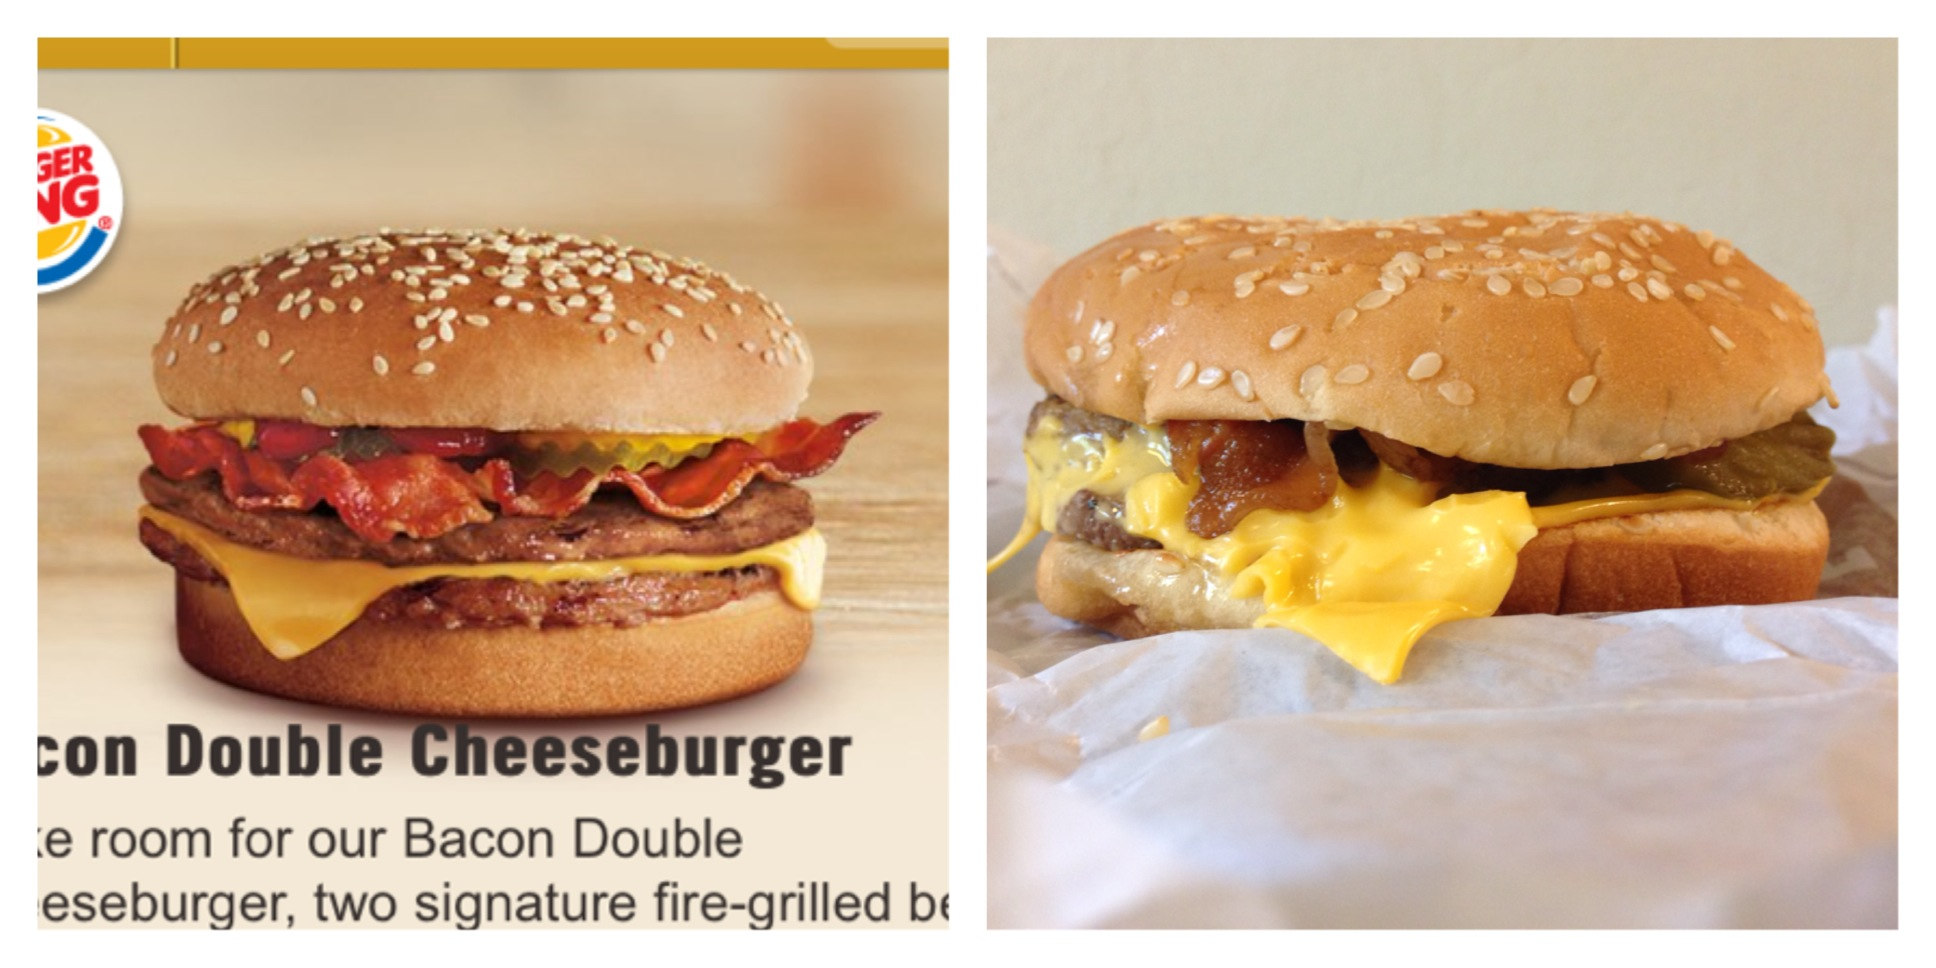 The Bacon Double Cheeseburger From Burger King